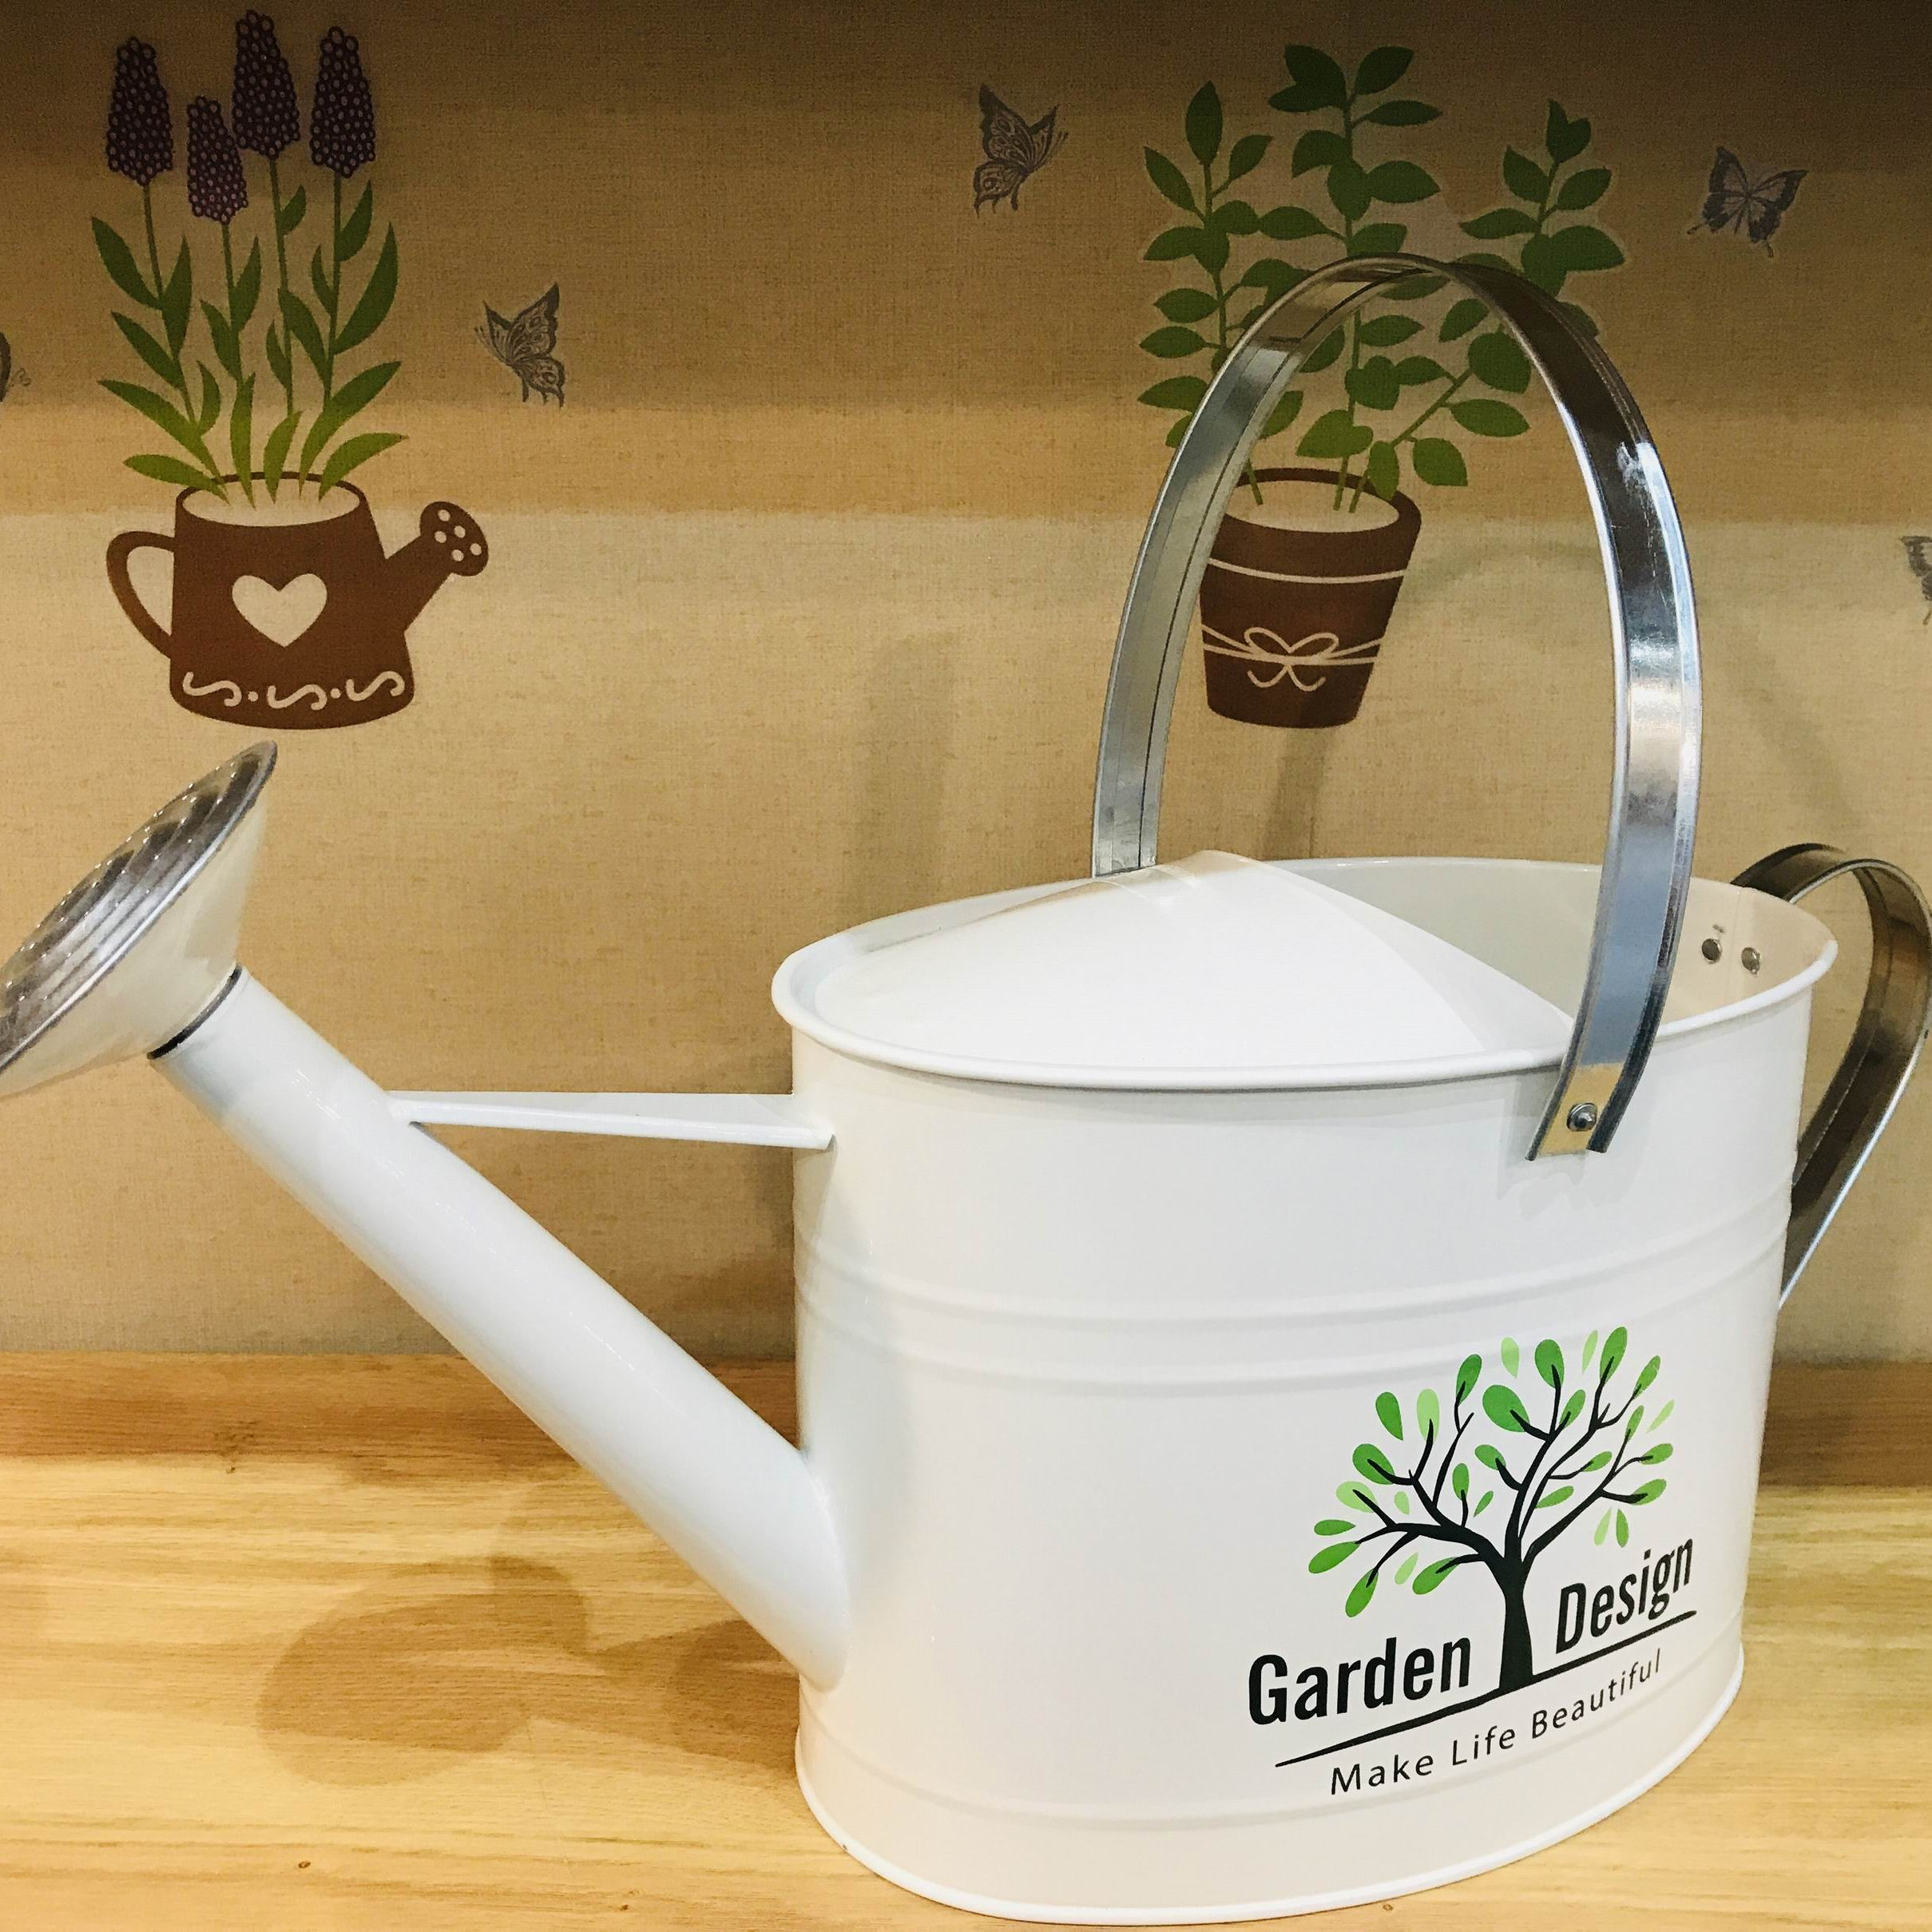 Tree design home garden decoration 7L long spout metal watering can